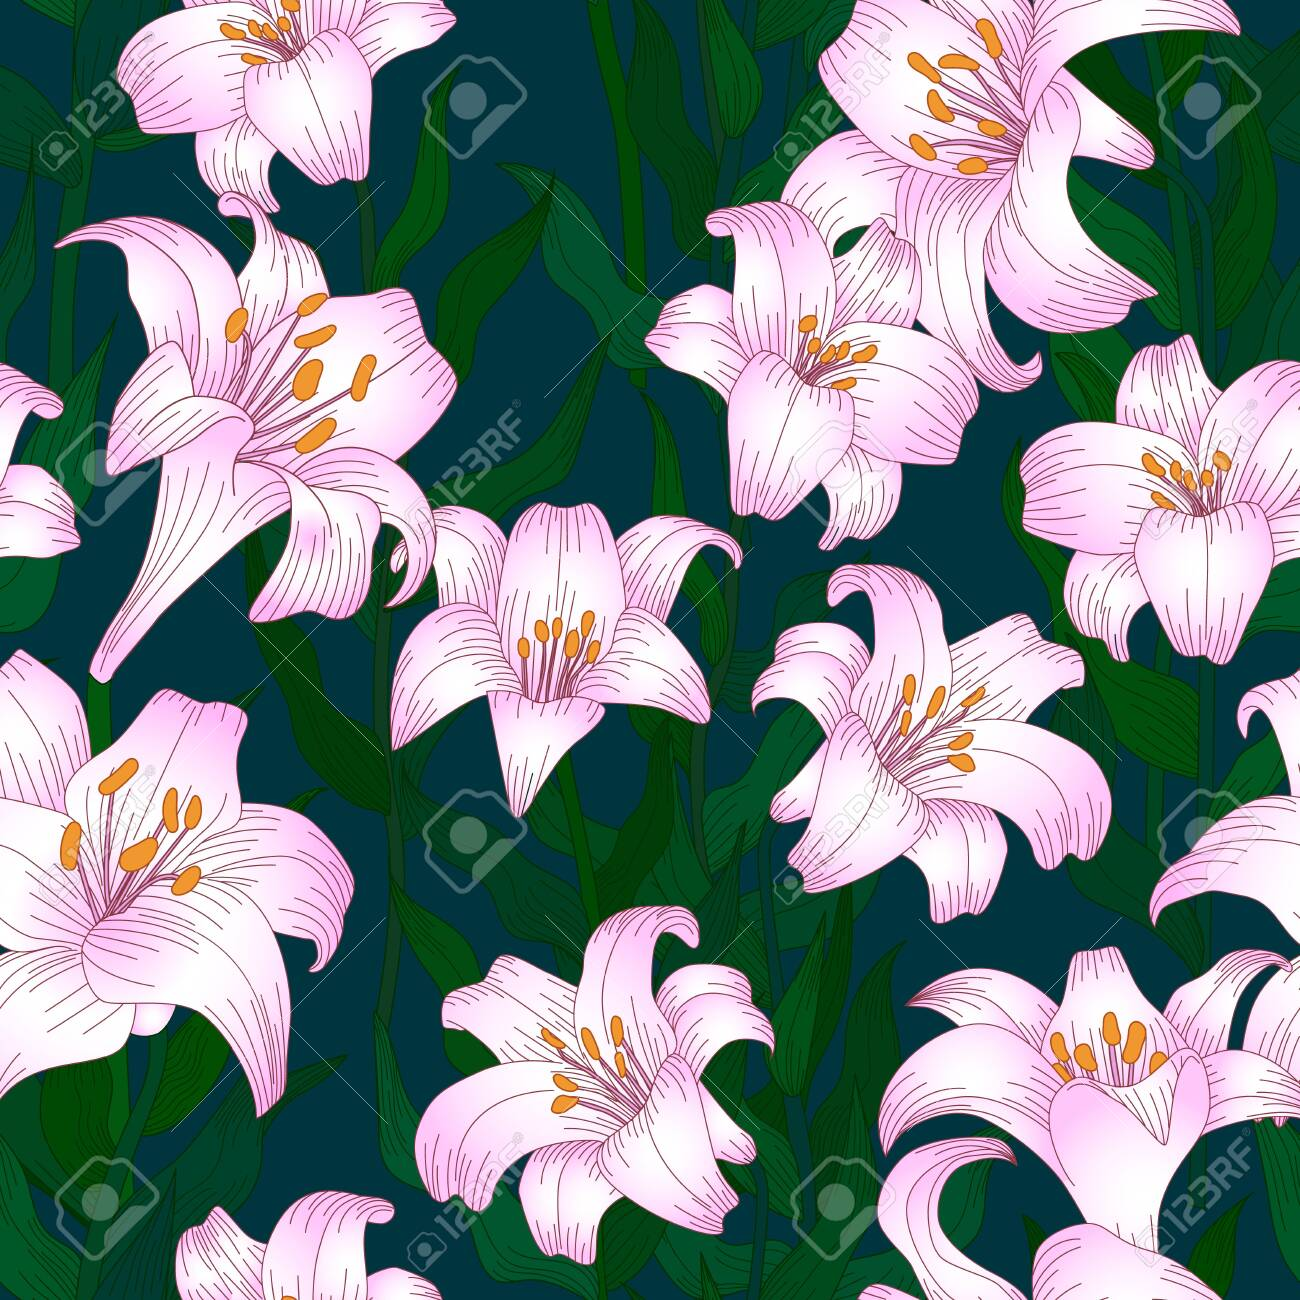 Seamless pattern with beautiful garden flowers - light pink lilies. Repetition texture with botanic objects for wrapping paper, web background or textile design. Vector illustration - 147401492